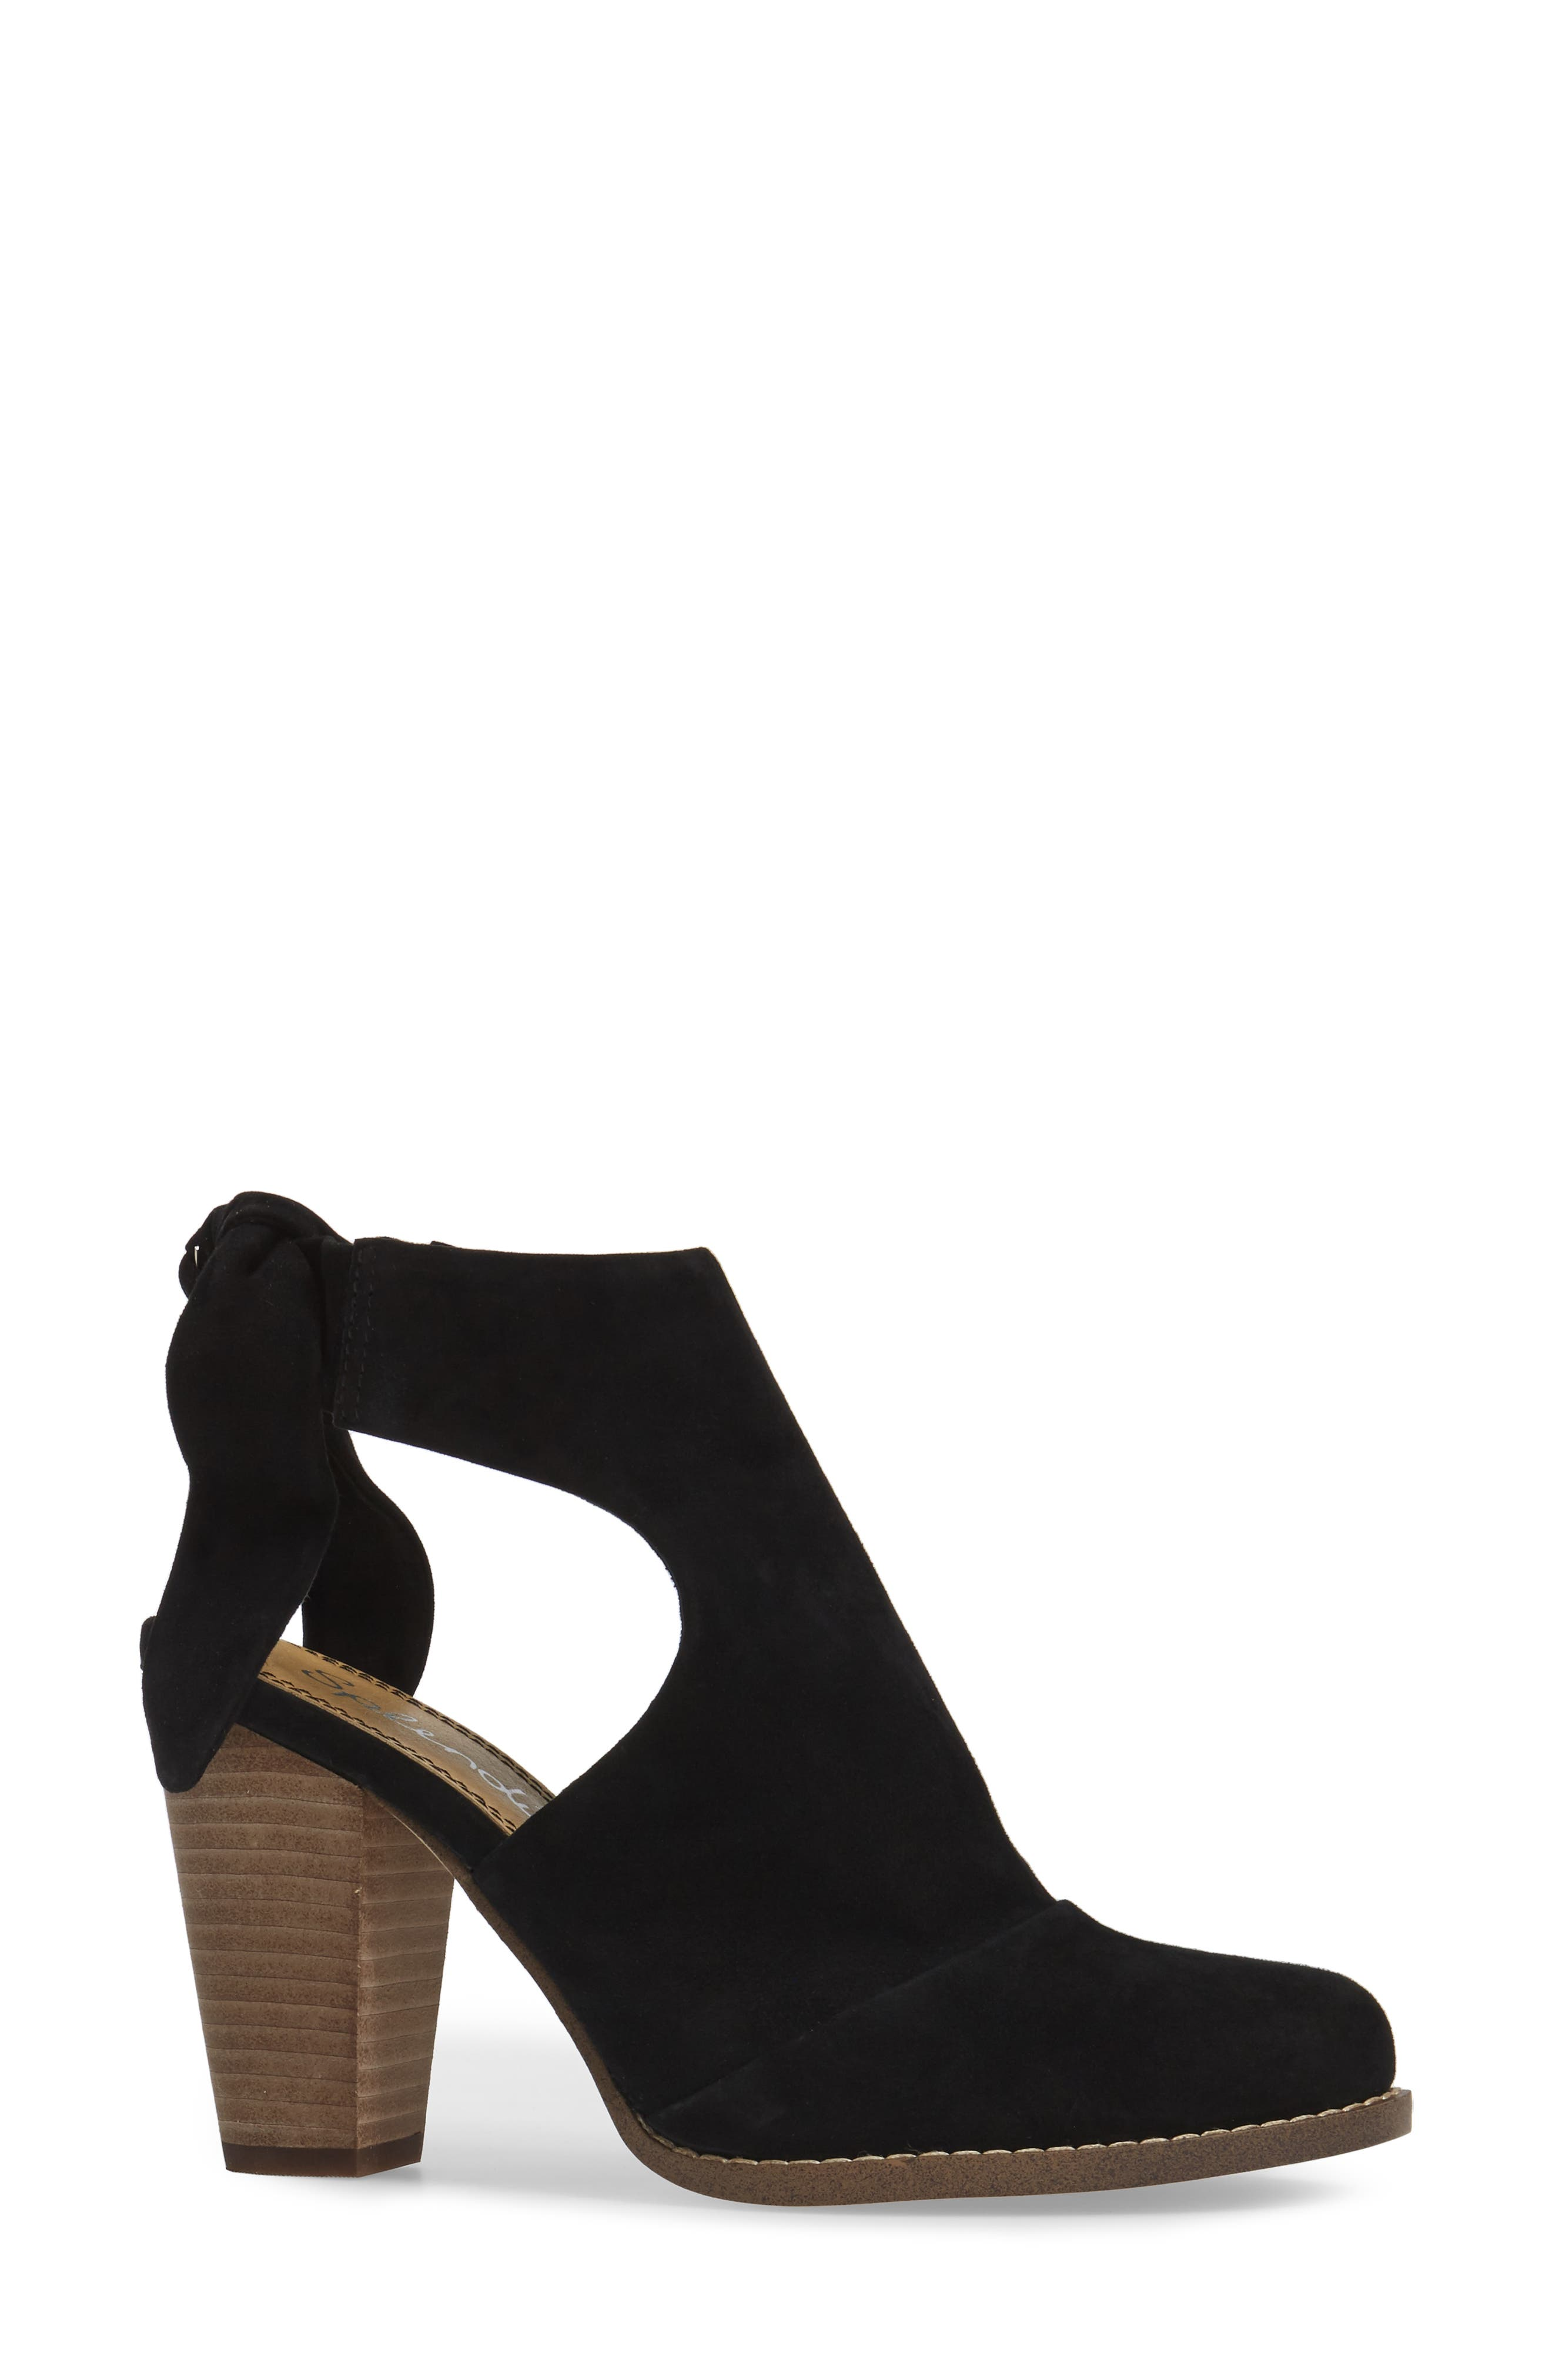 Danae Stacked Heel Bootie,                             Alternate thumbnail 3, color,                             013